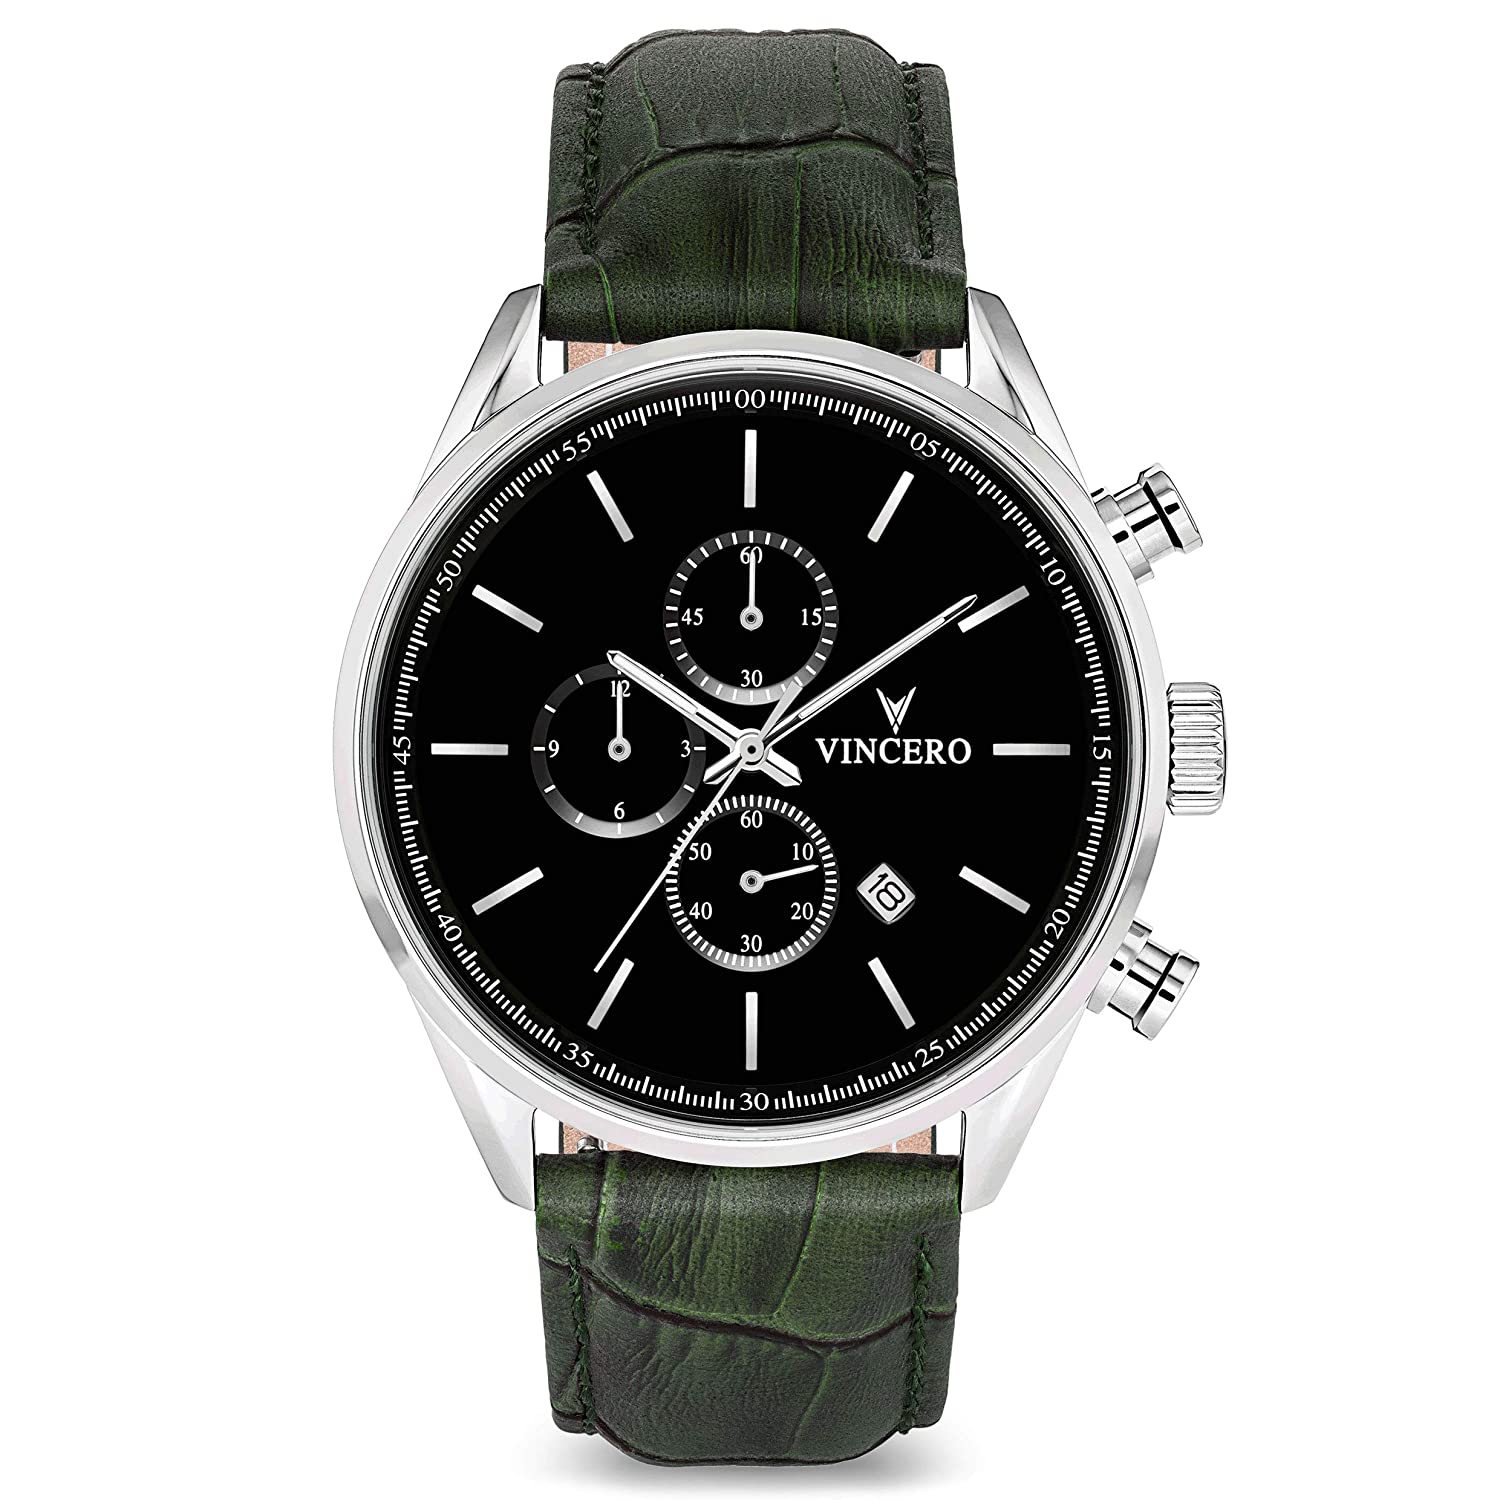 Amazon.com: Vincero Luxury Mens Chrono S Wrist Watch — Black dial with Olive Leather Watch Band — 43mm Chronograph Watch — Japanese Quartz Movement: ...